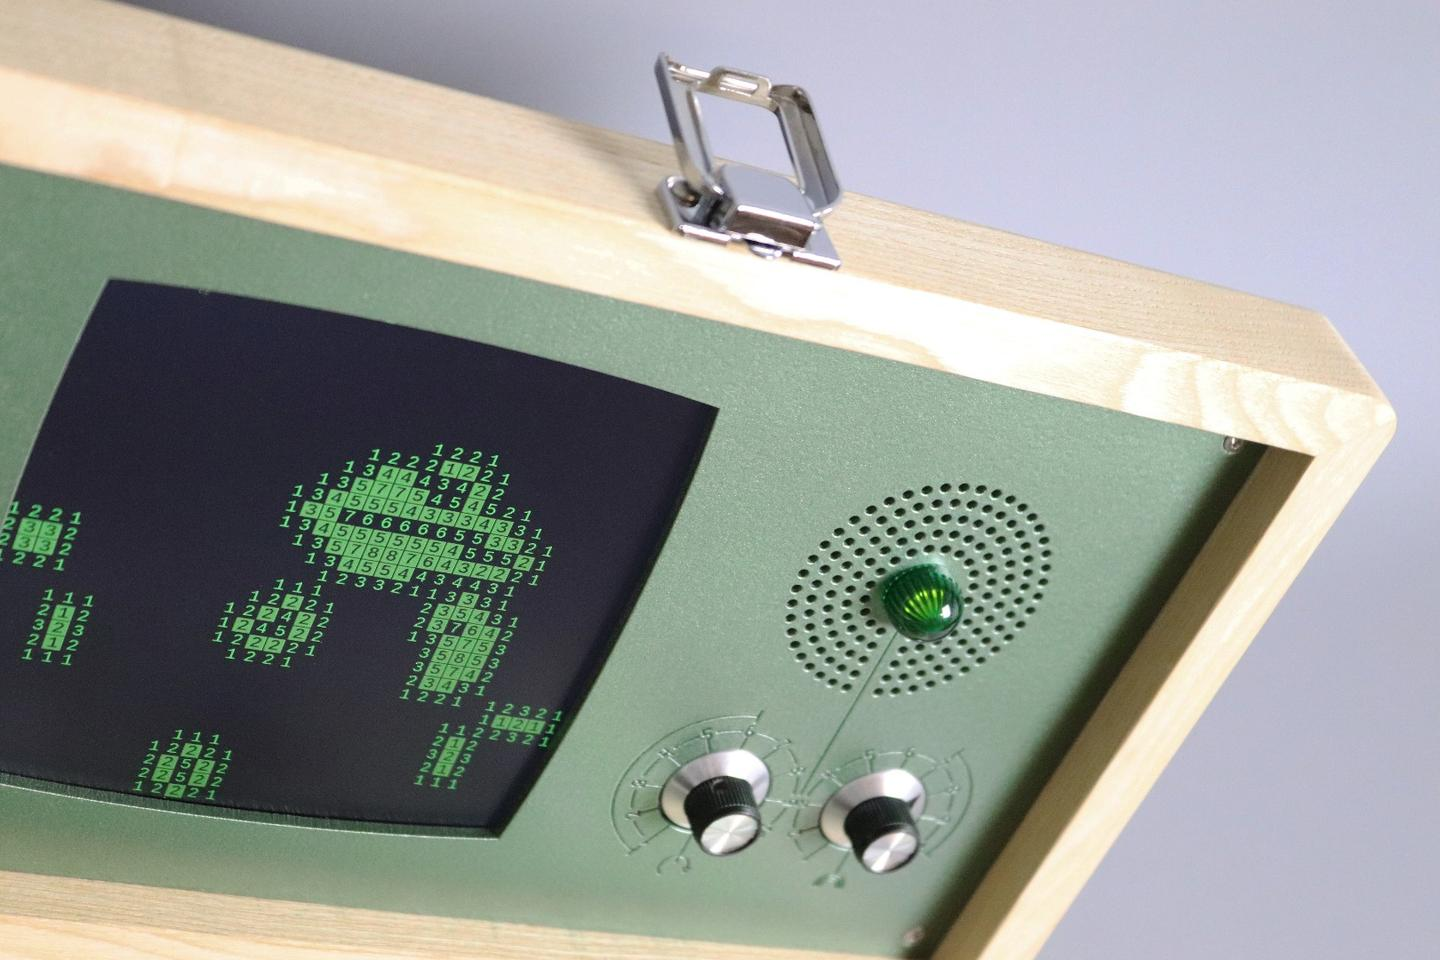 Sound generation for the Evoboxx is based on a zero-player game from 1970 called Game of Life